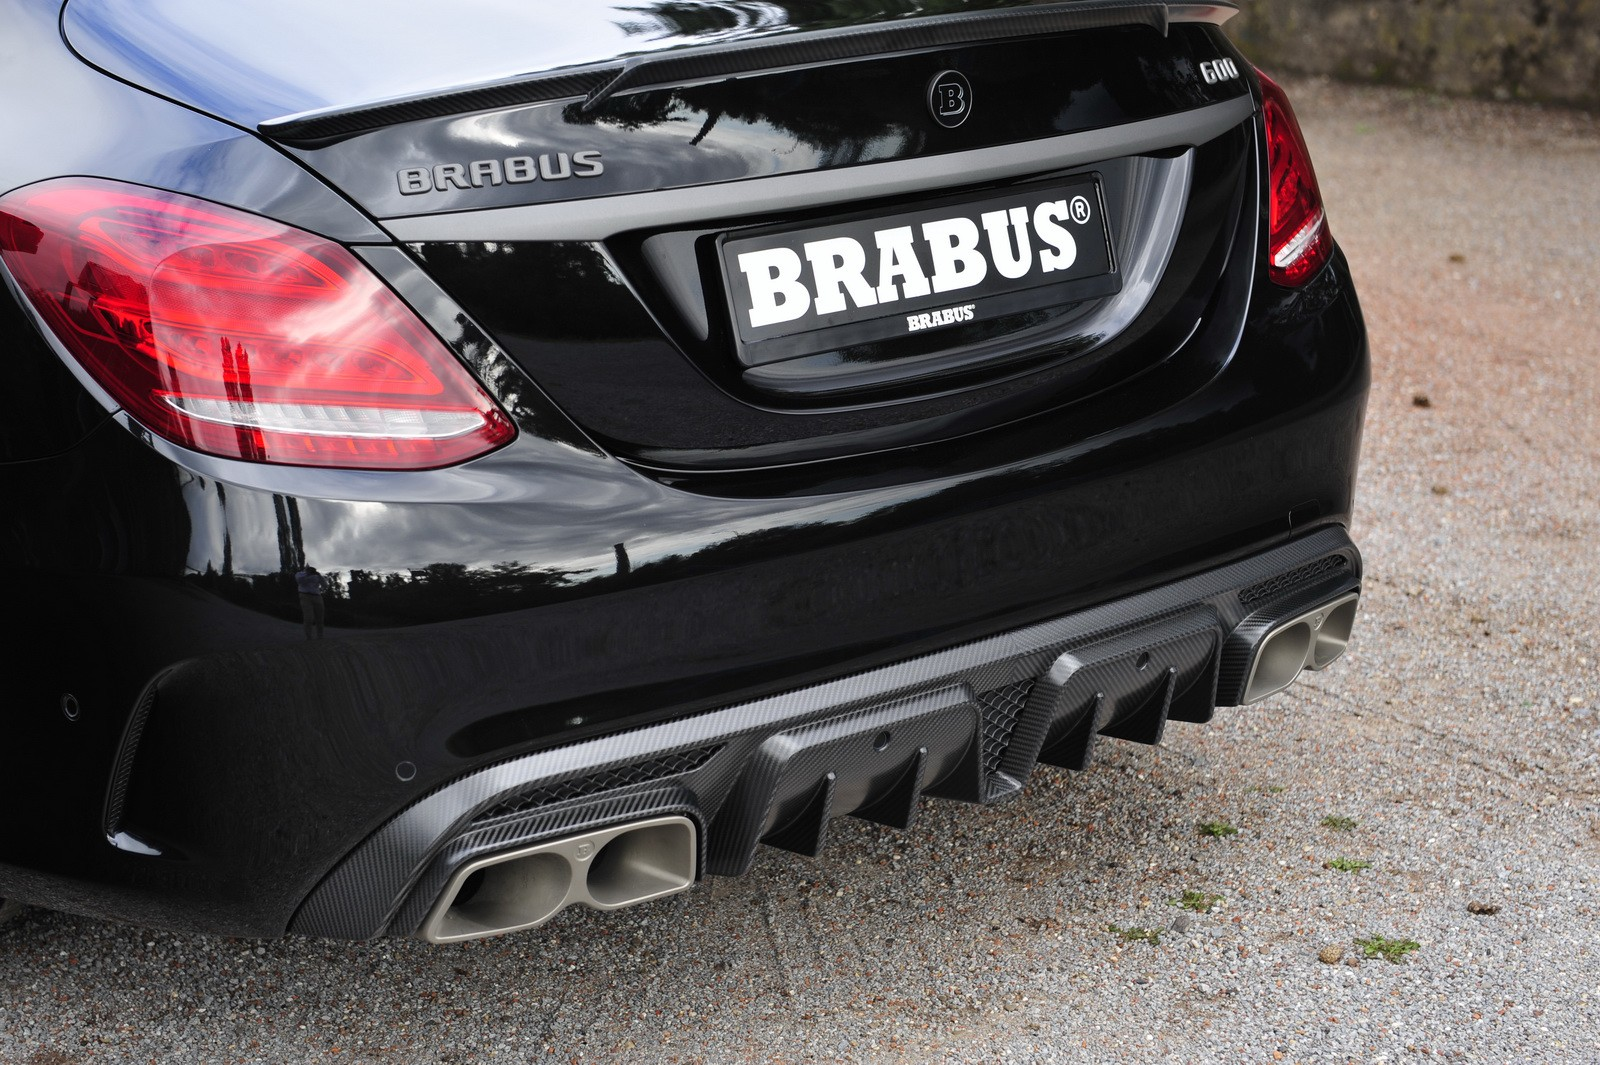 Dsc in addition Hot German Girls Bring The Fire To Mercedes Cla Amg Photo Shooting Video additionally Dsc likewise Mercedes Benz C Amg C Amg S Break Cover Photo Gallery further Mercedes Benz Ml. on the mercedes benz s plug in hybrid is here